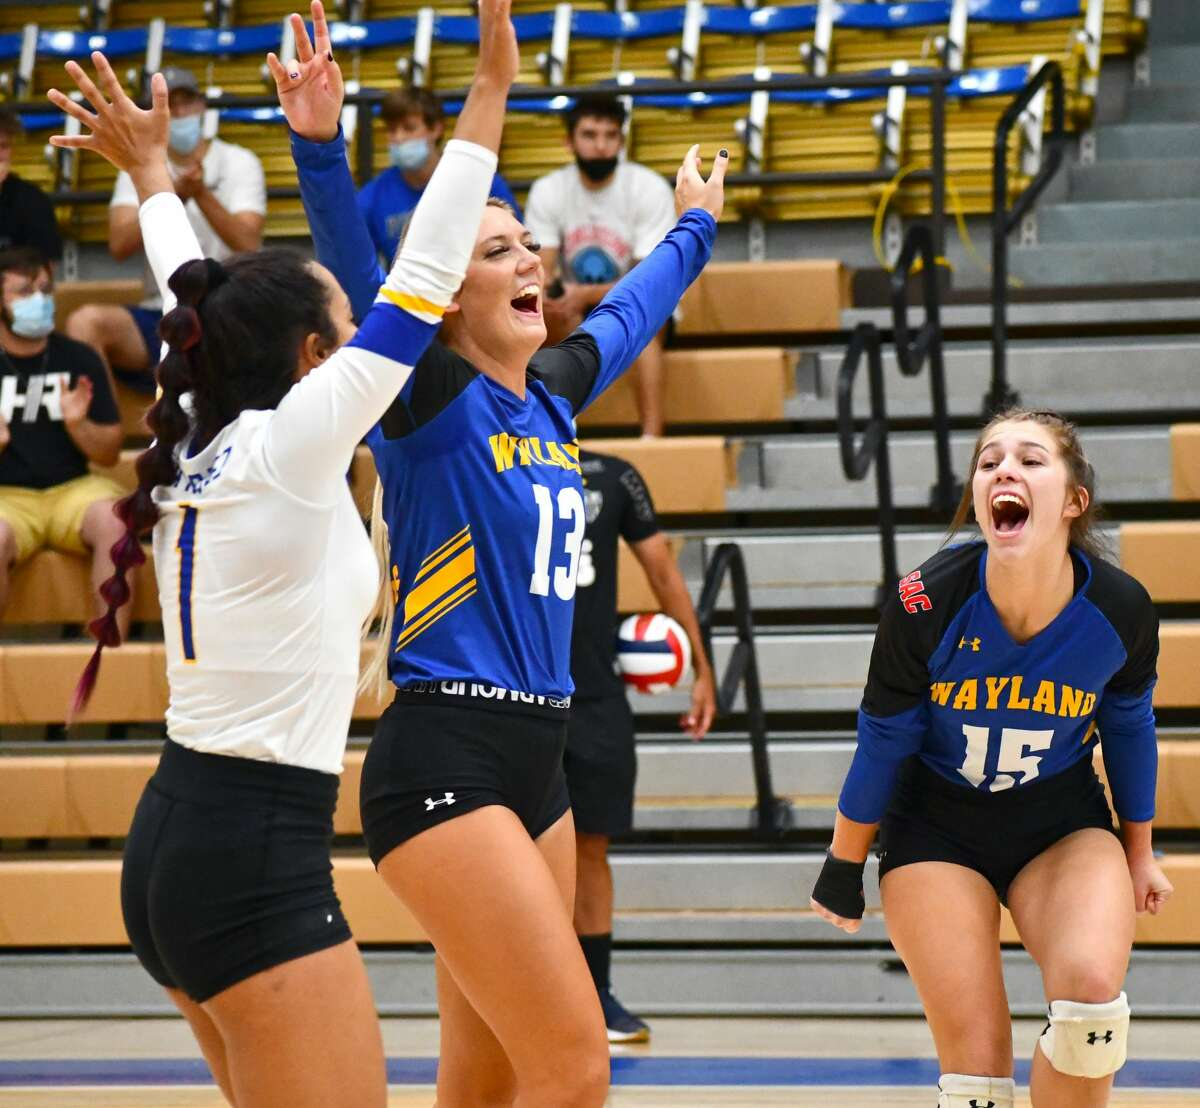 Veterans such as Ariel Marquez (1), Amber Daniel and Tevia Bell have helped the Pioneers to a 14-4 record and 7-1 start to SAC play.